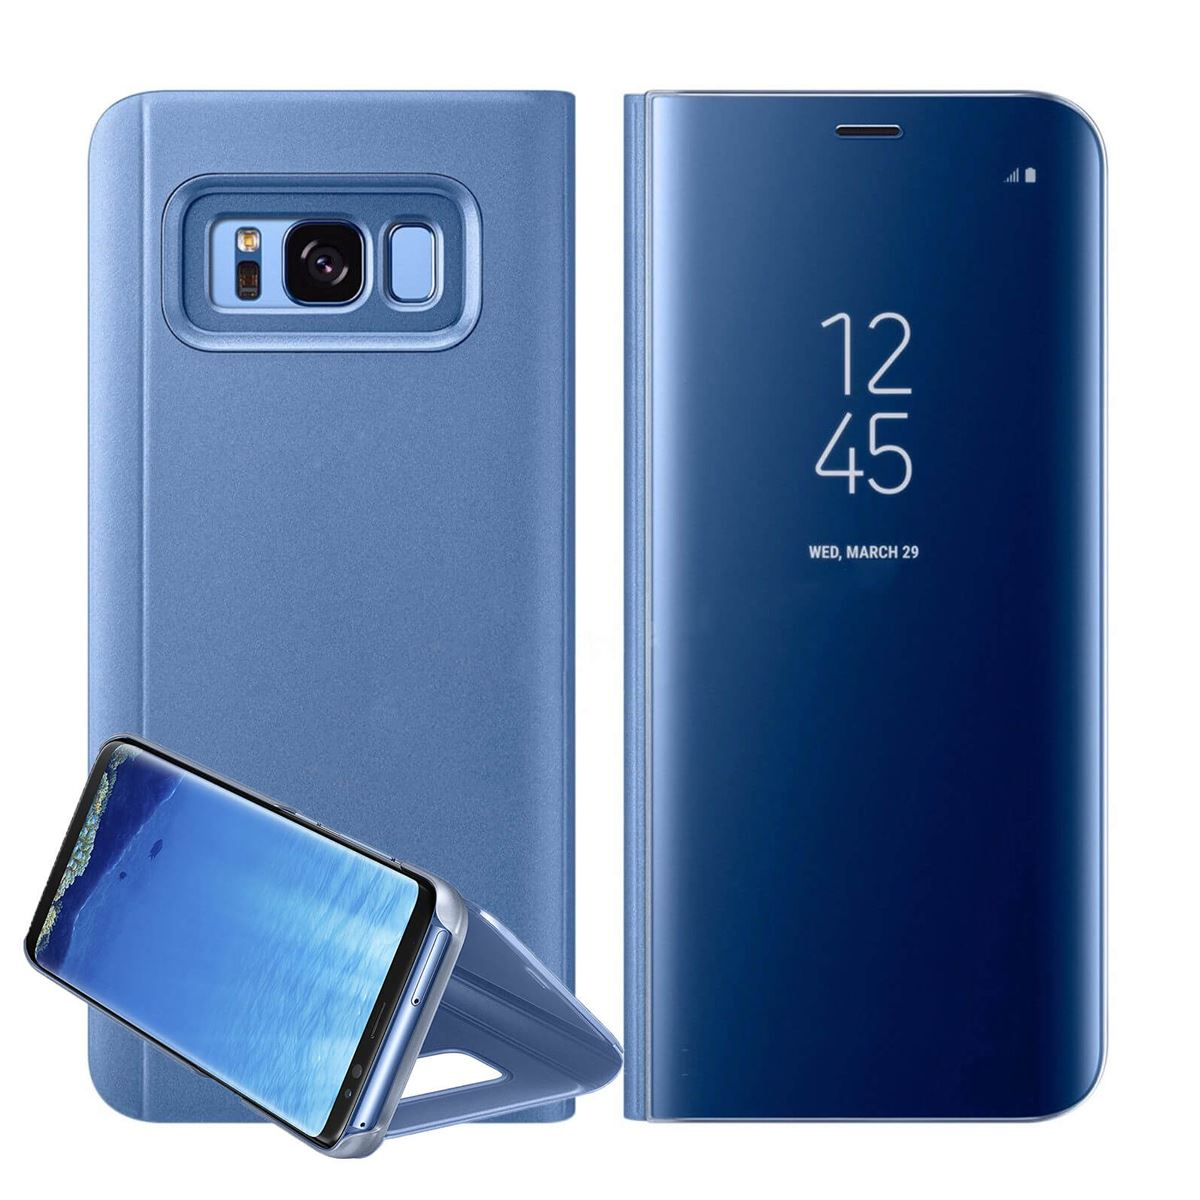 New-Samsung-Galaxy-S10-S9-S8-Smart-View-Mirror-Leather-Flip-Stand-Case-Cover thumbnail 48